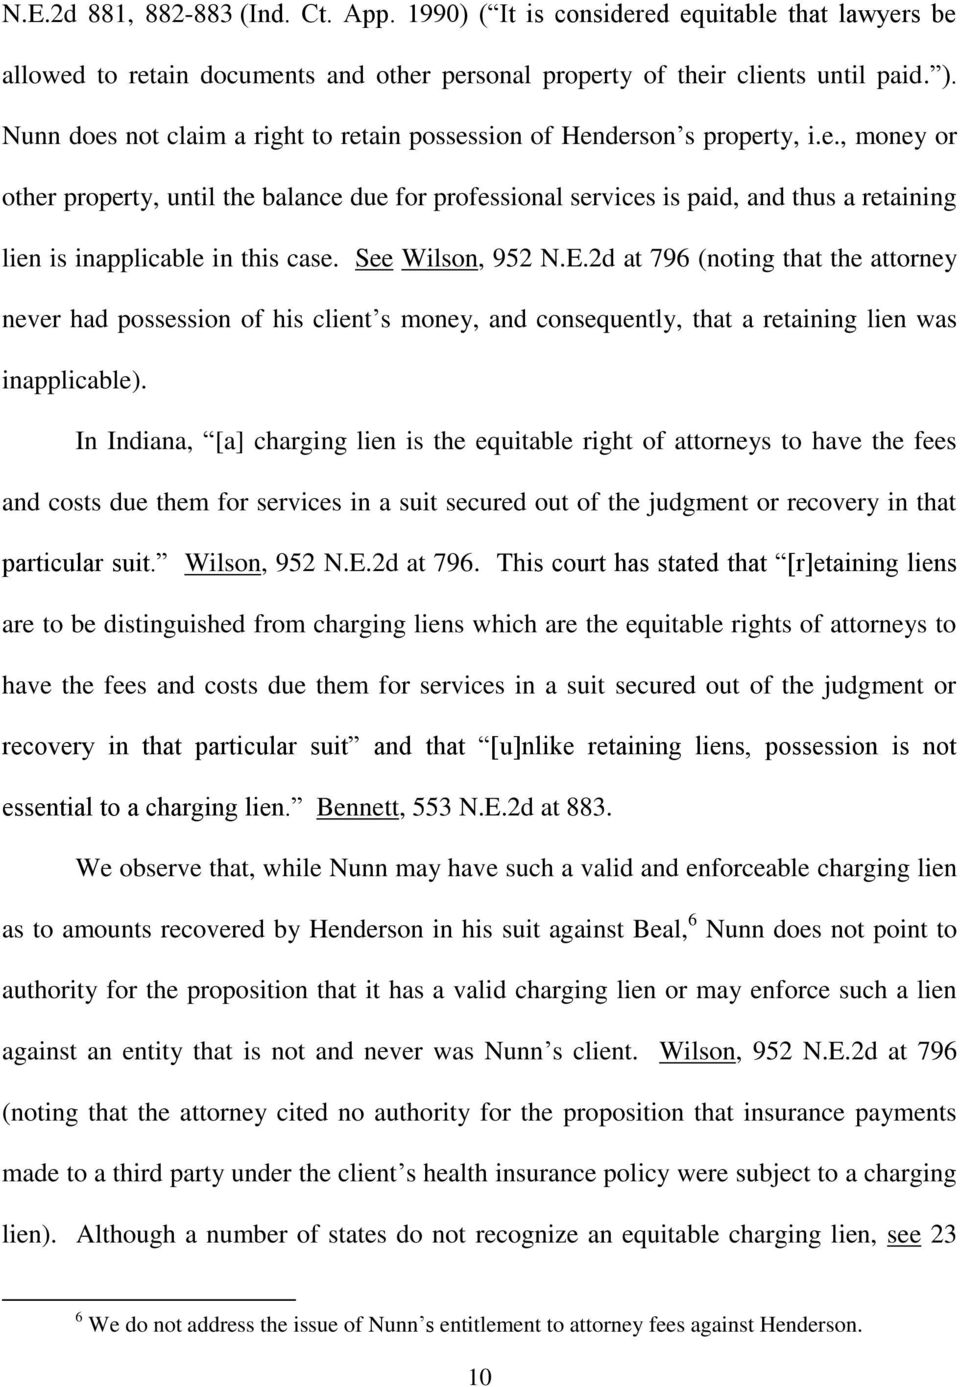 See Wilson, 952 N.E.2d at 796 (noting that the attorney never had possession of his client s money, and consequently, that a retaining lien was inapplicable).